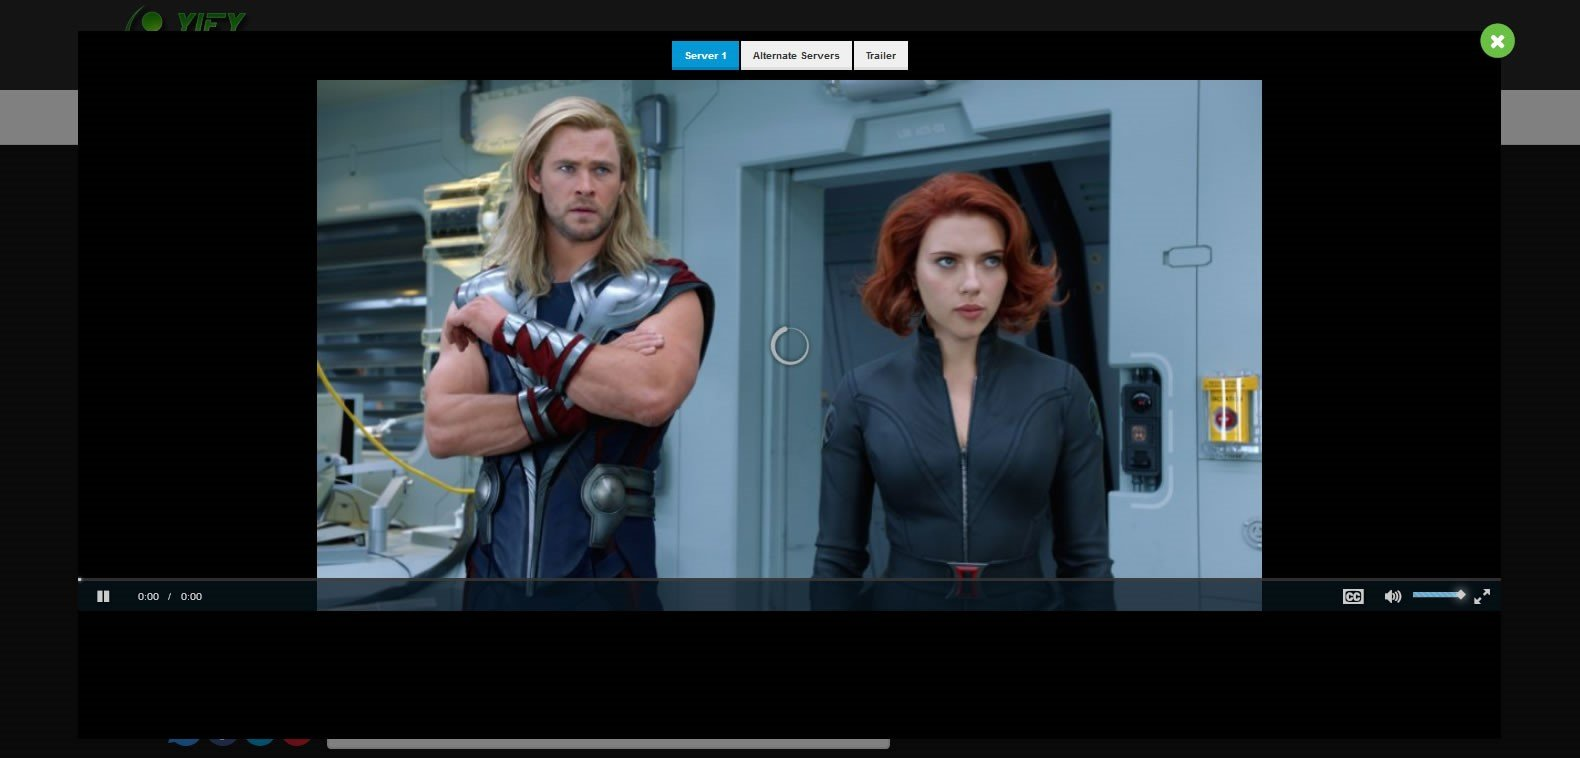 Yify stream alternatives and similar websites and apps its possible to update the information on yify stream or report it as discontinued duplicated or spam ccuart Gallery